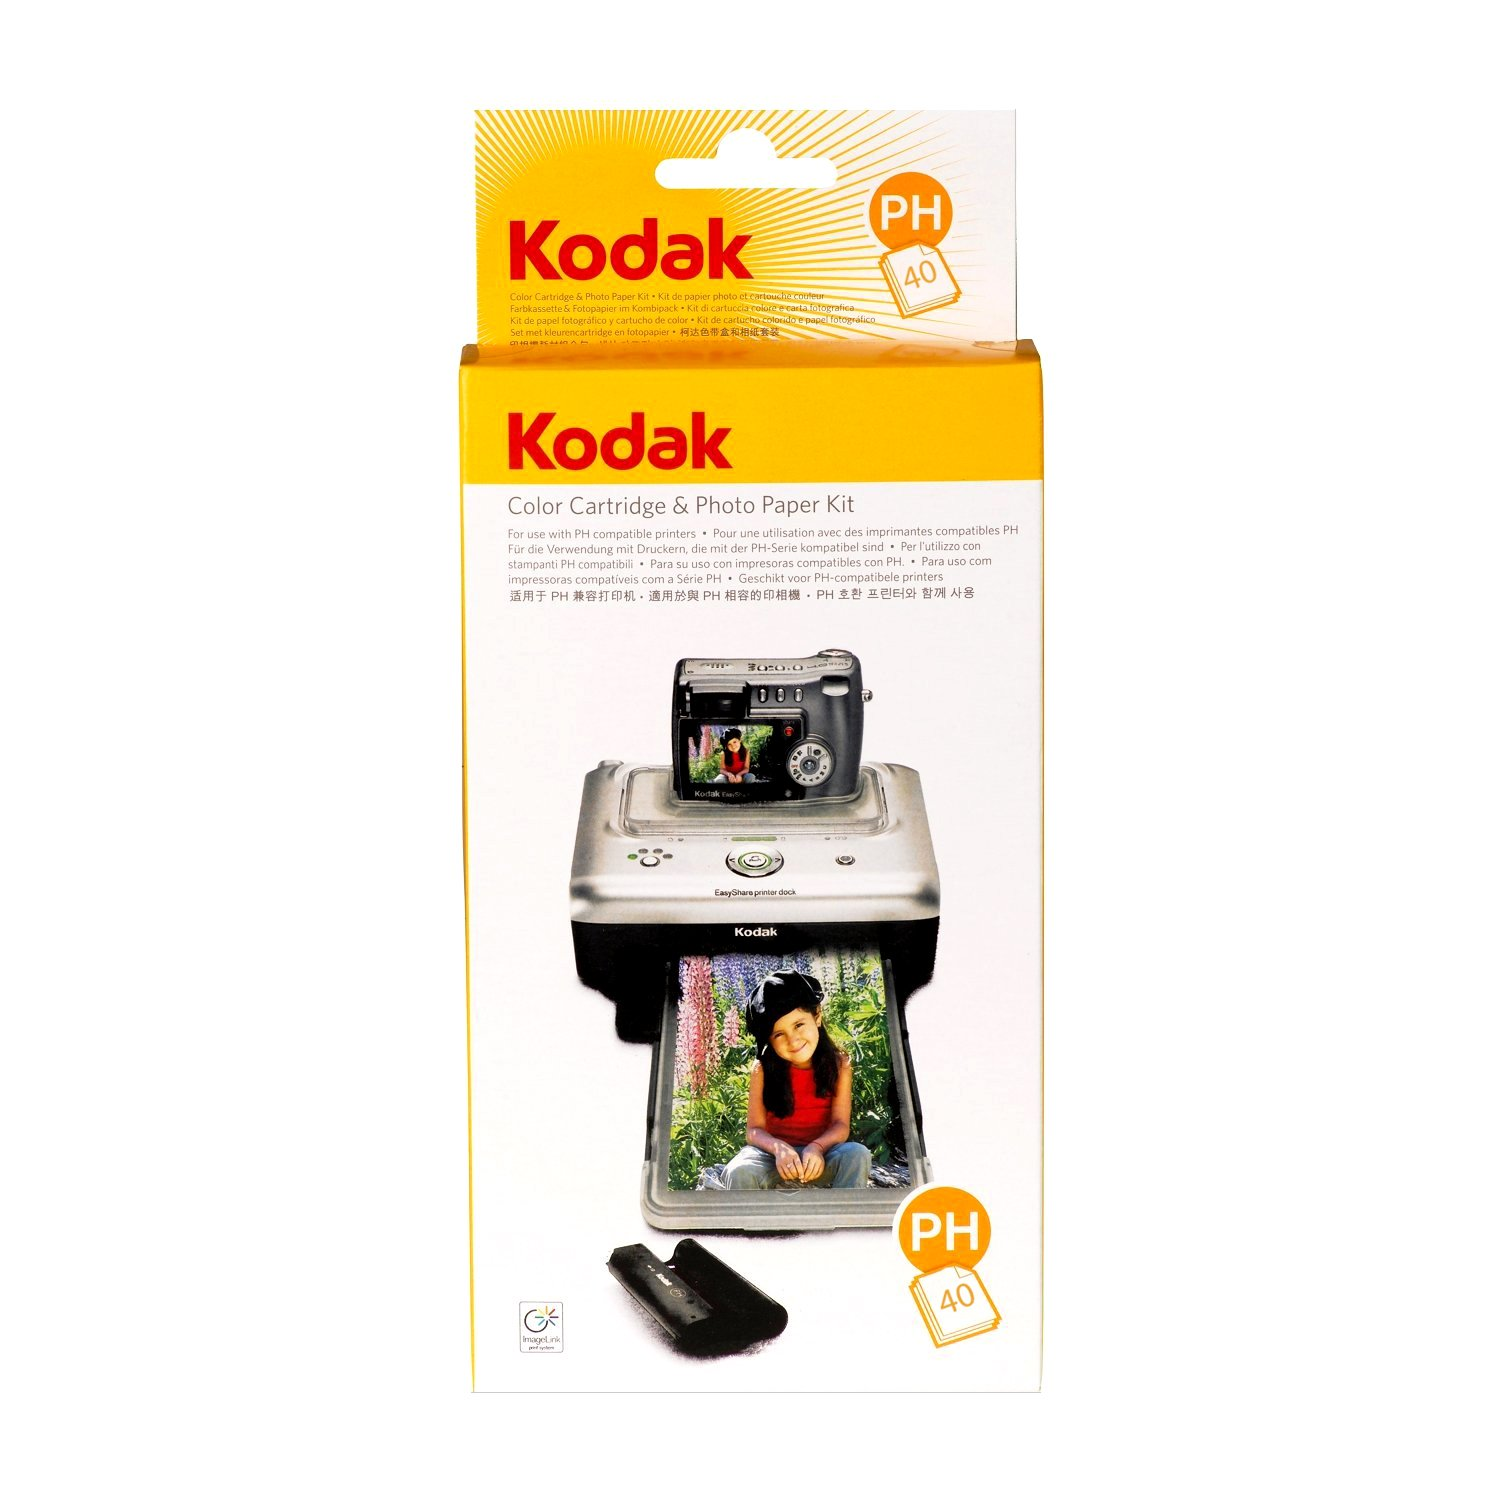 Amazon Kodak PH 40 EasyShare Printer Dock Color Cartridge Photo Paper Refill Kit Quality Office Products